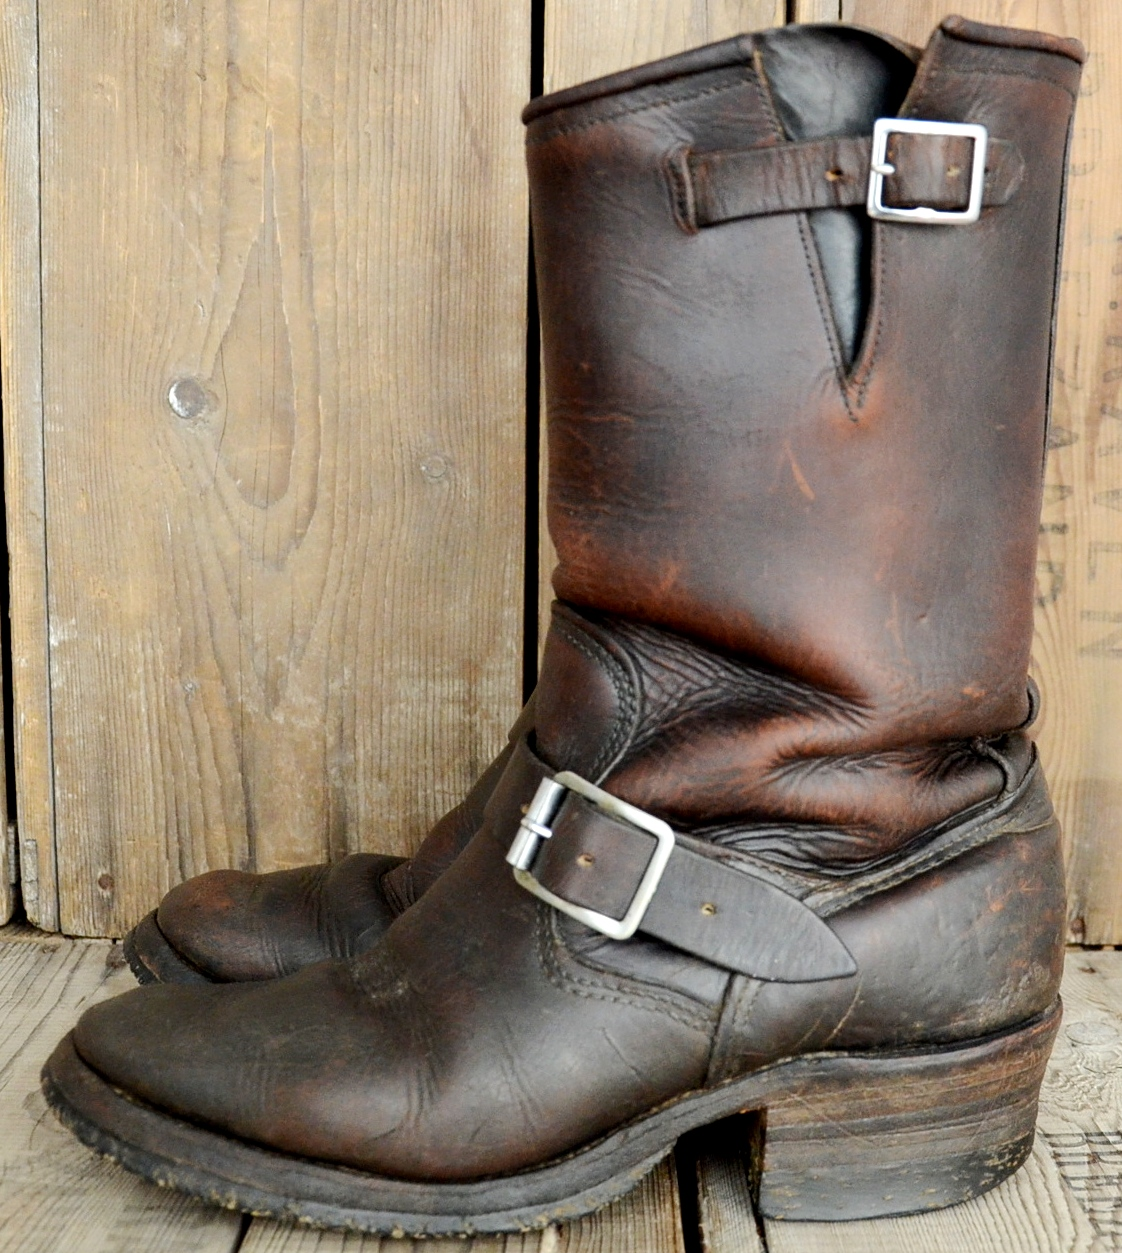 Vintage Engineer Boots: June 2013